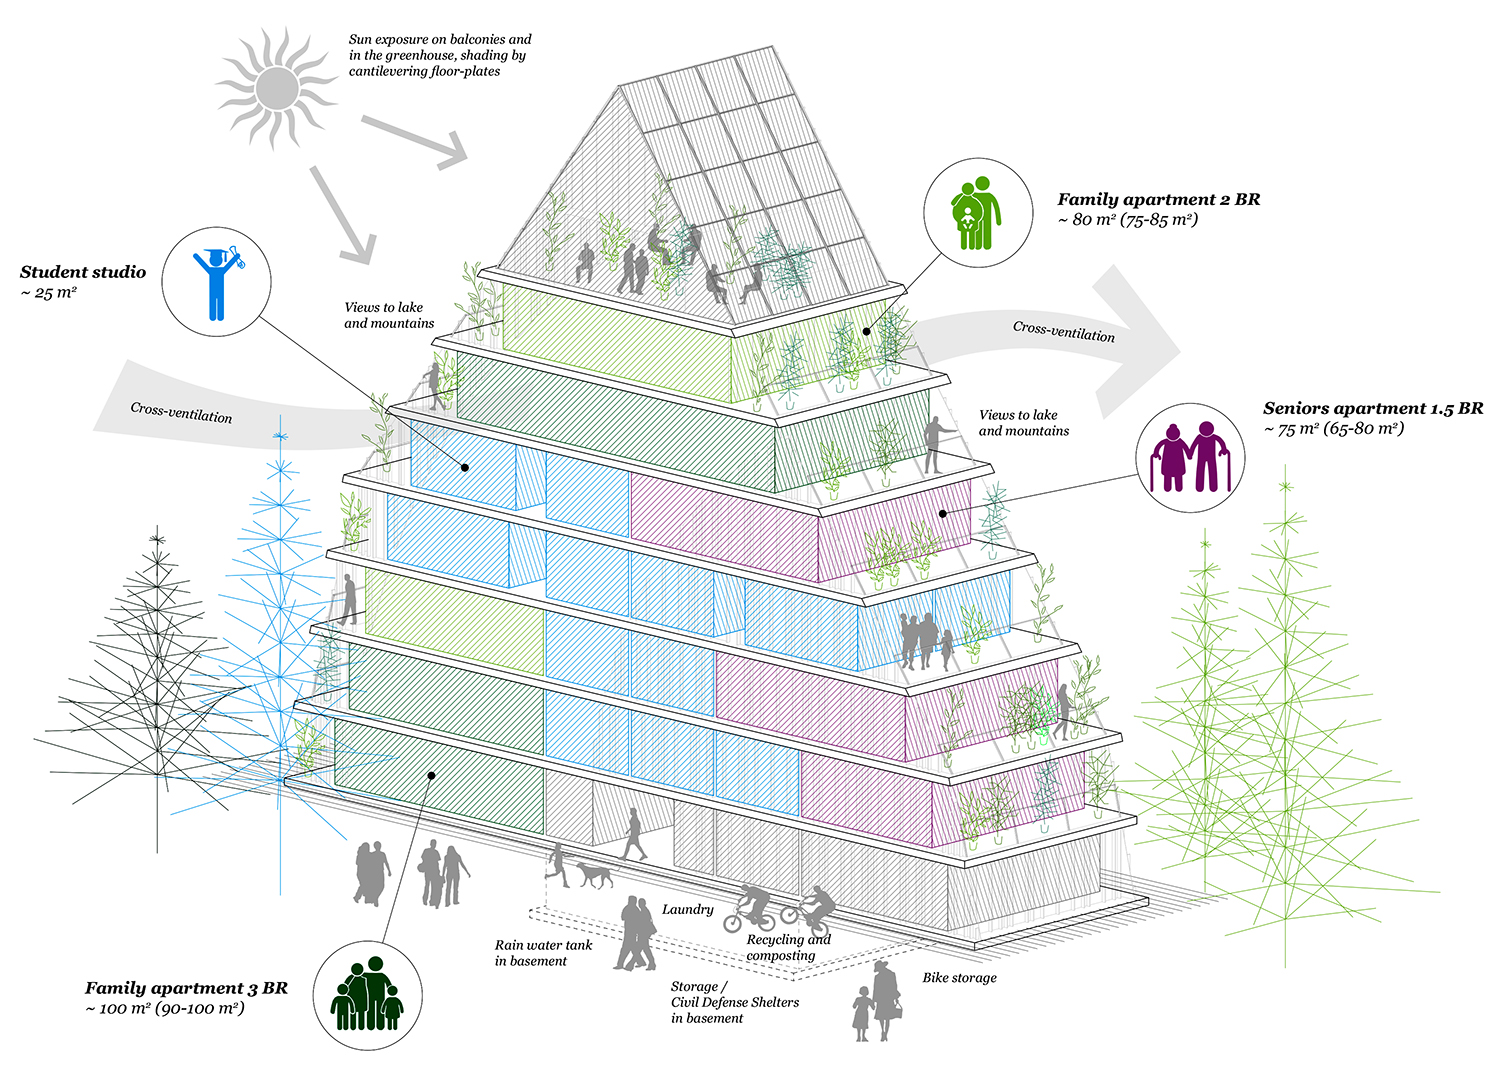 The axonometric projection shows the south-oriented typology